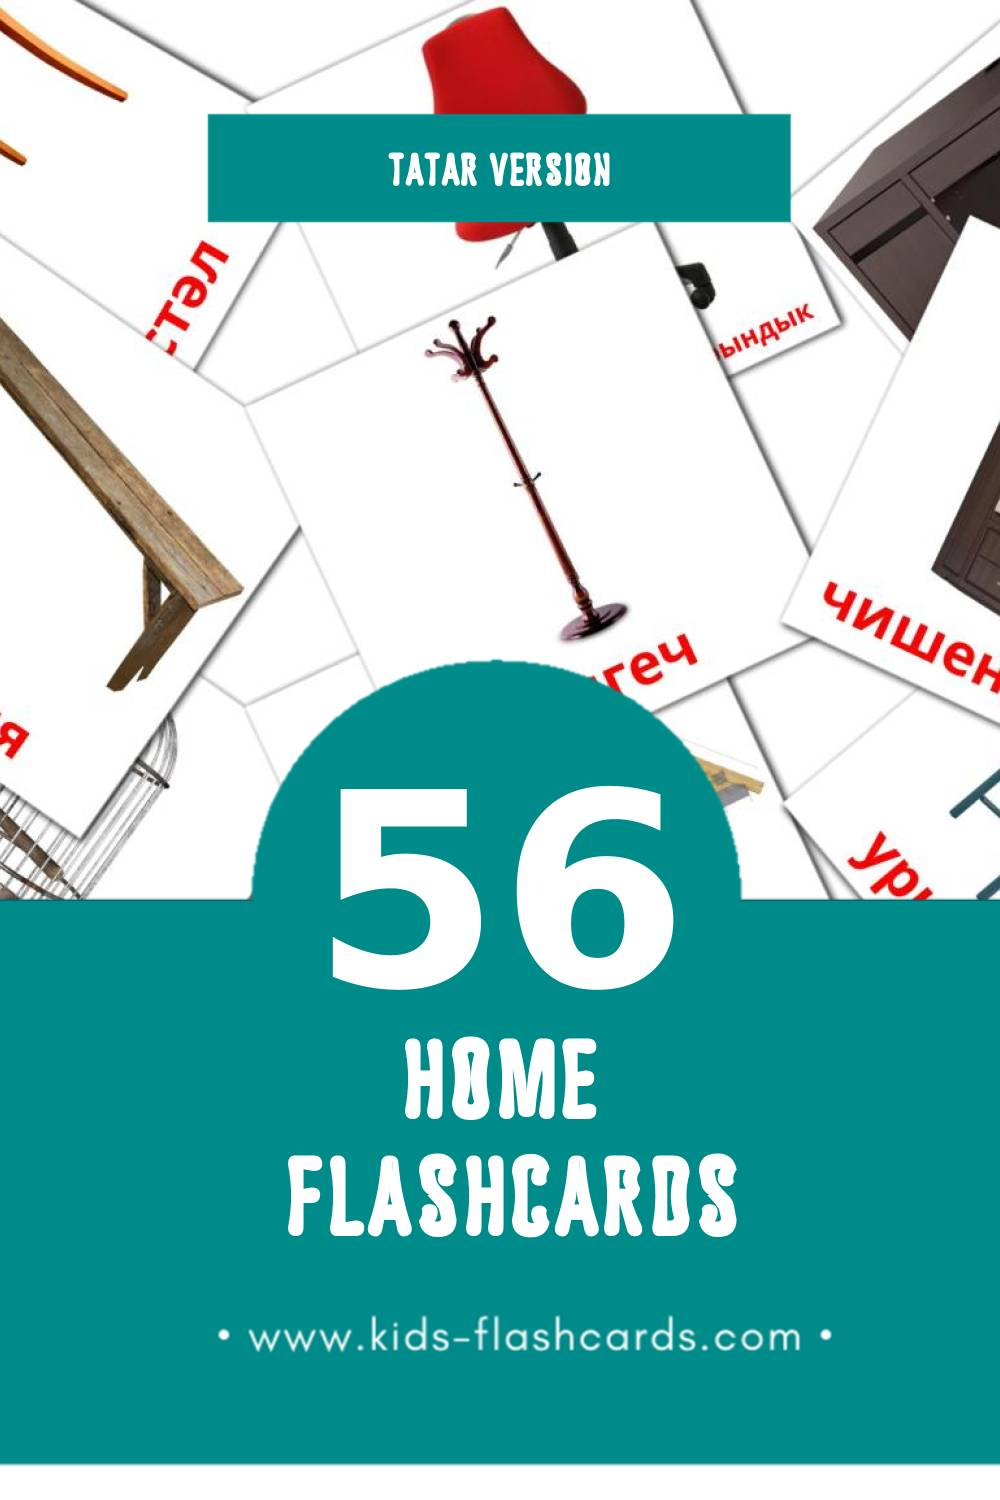 Visual өй Flashcards for Toddlers (56 cards in Tatar)